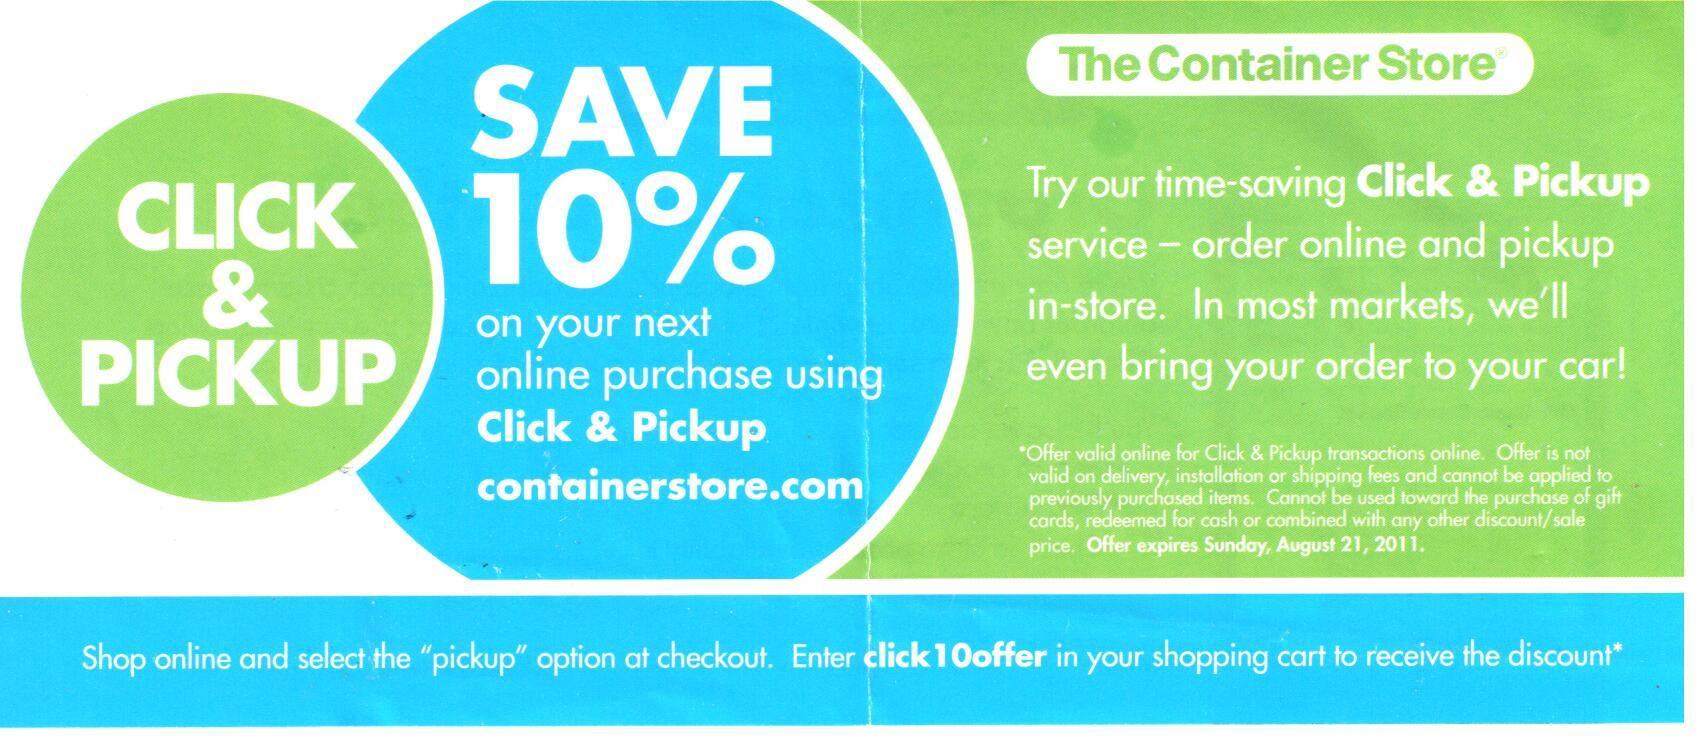 Expired The Container Store Coupons